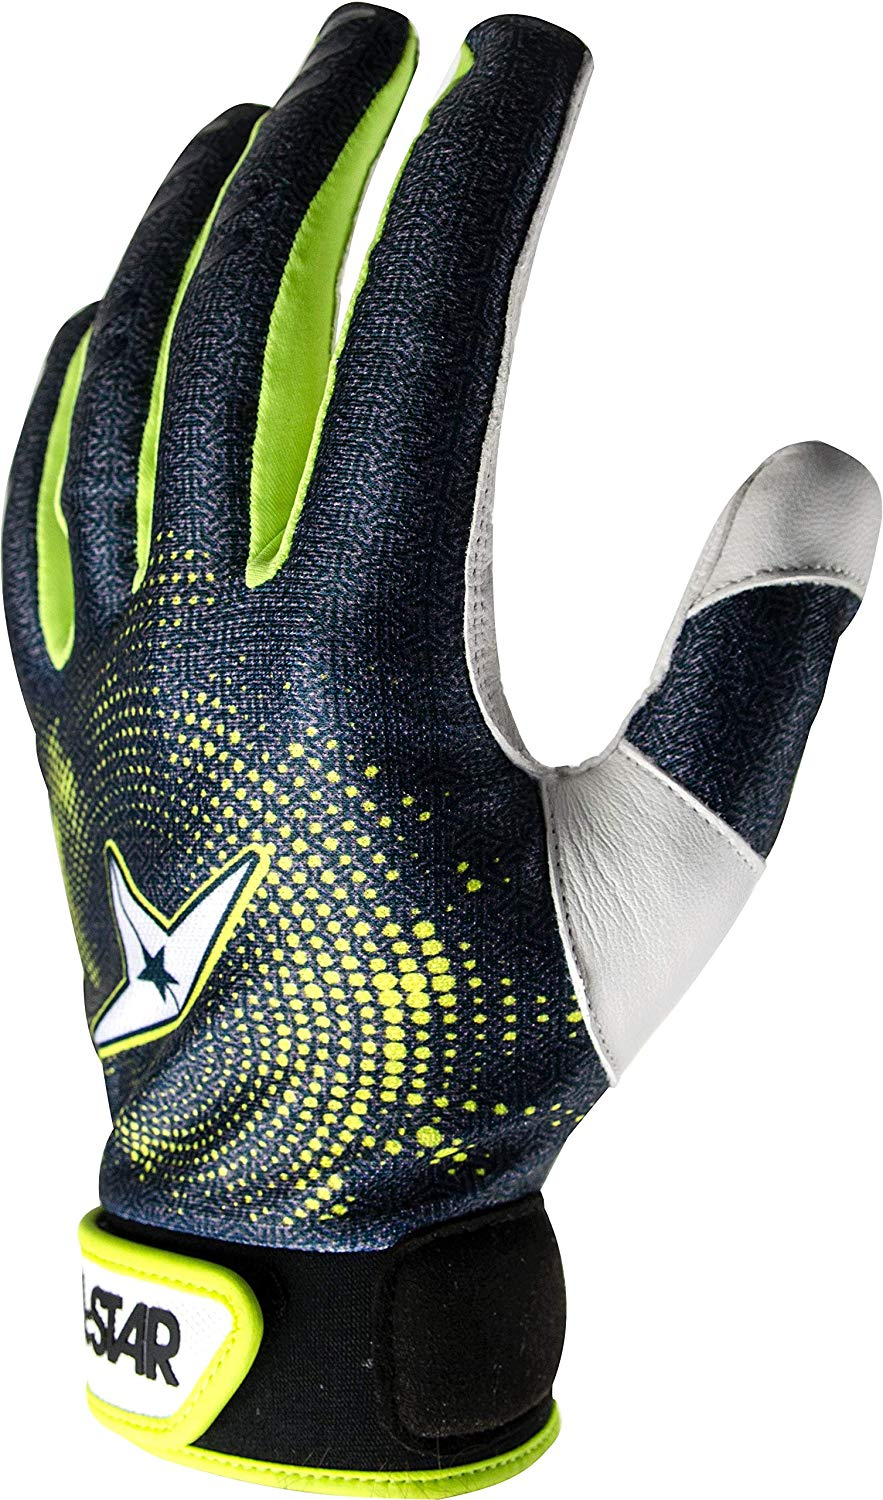 all-star-adult-full-palm-baseball-catchers-inner-protective-glove-adult-x-large CG50001A-XL All-Star 029343048609 Lightweight and thin palm and finger pads absorb and spread shock